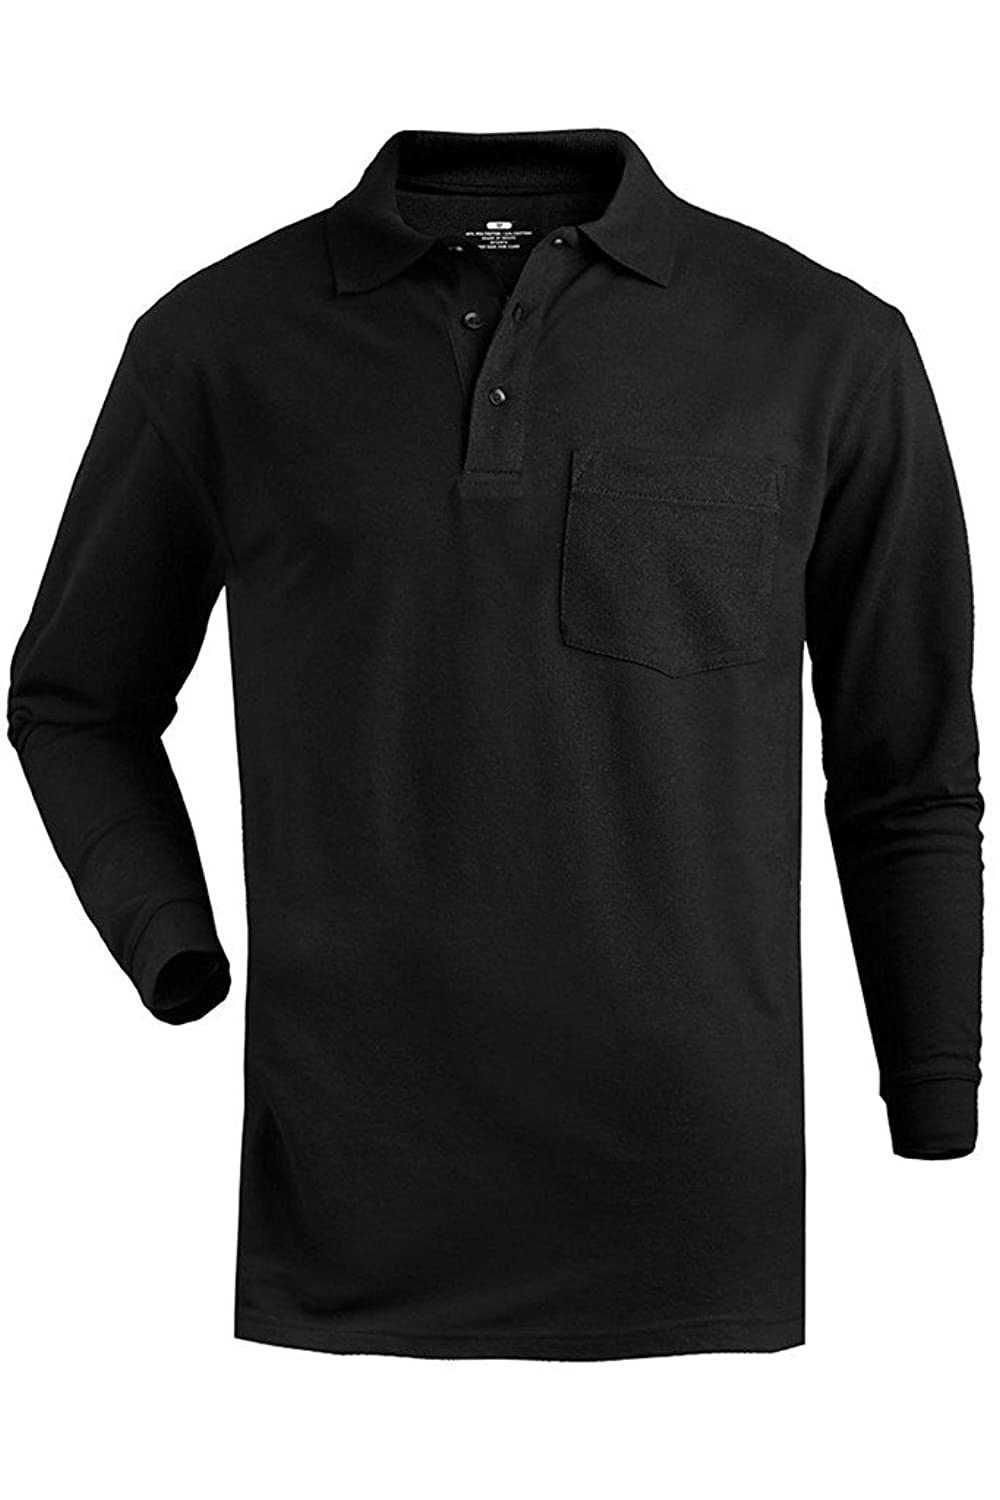 Black t shirt collar - Romano Men S Full Sleeve Polo T Shirt With Pocket Amazon In Clothing Accessories